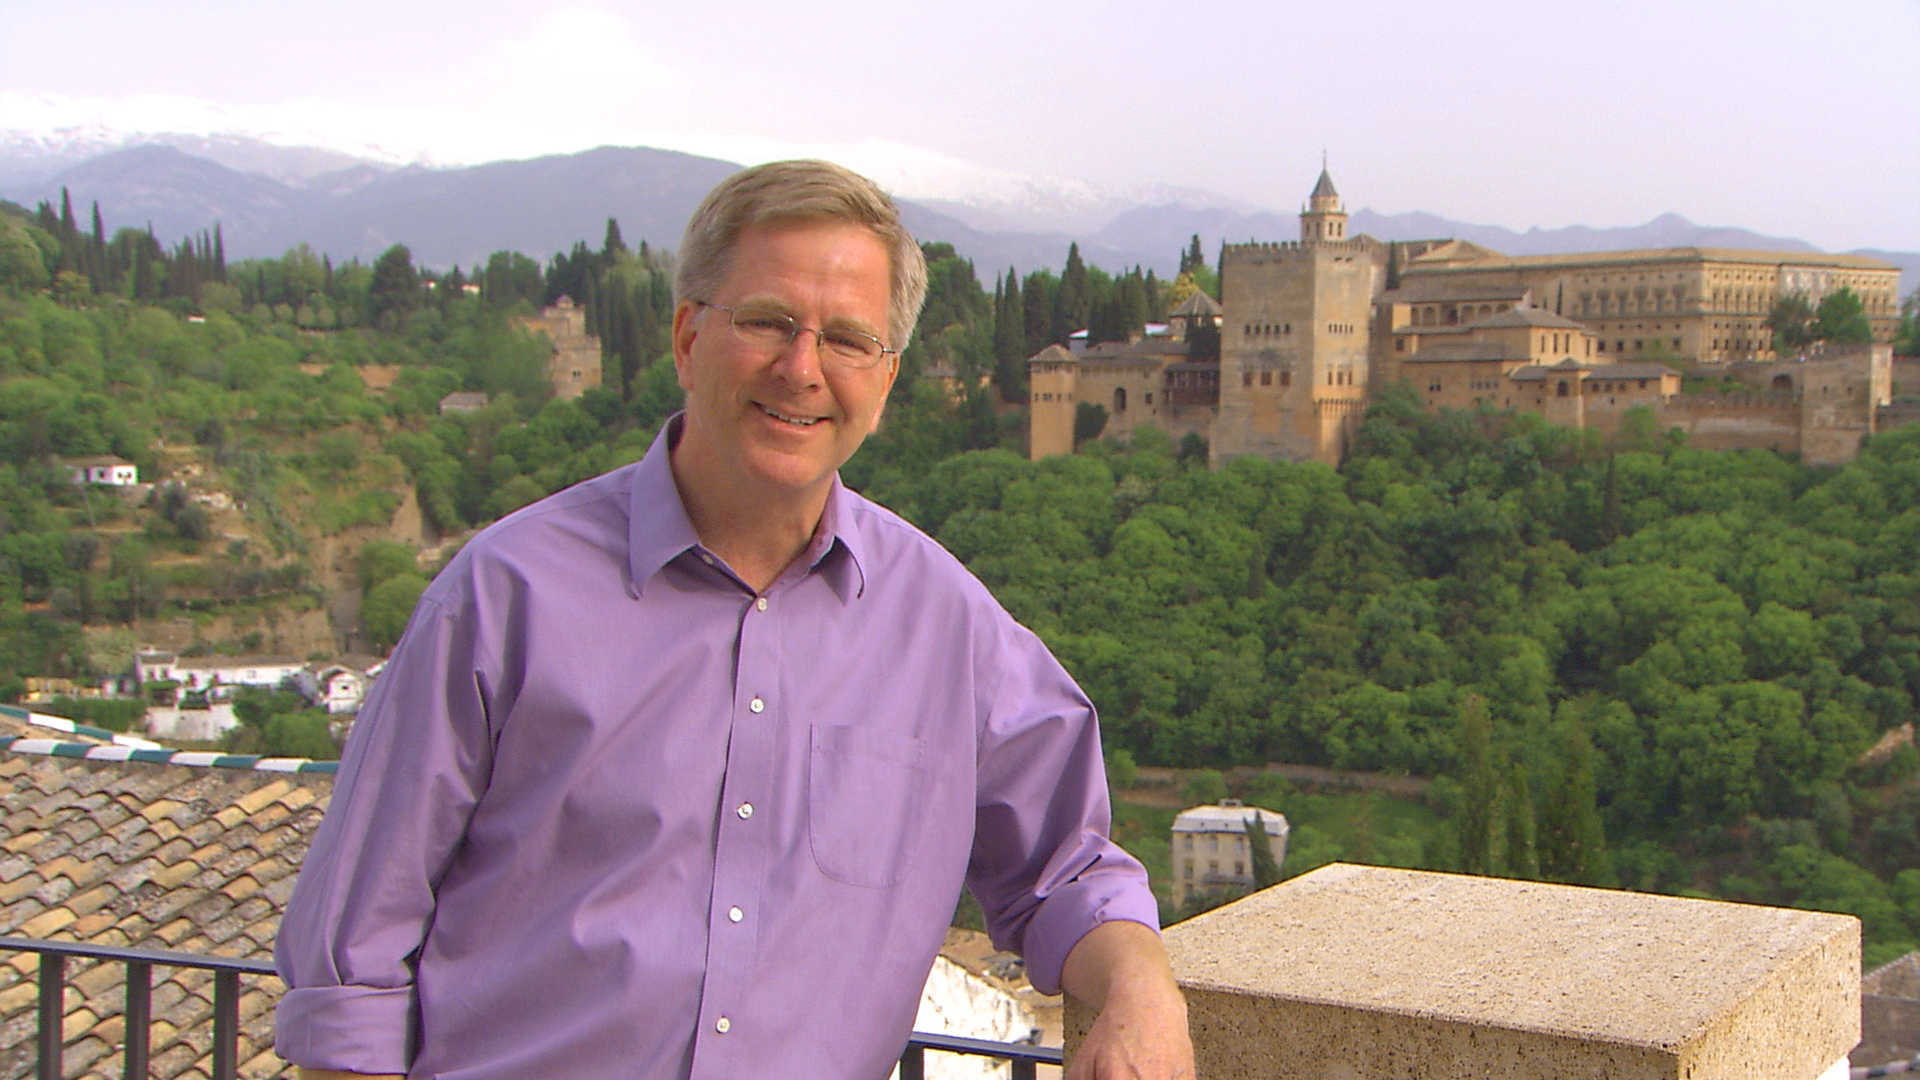 Rick Steves poses in Granada